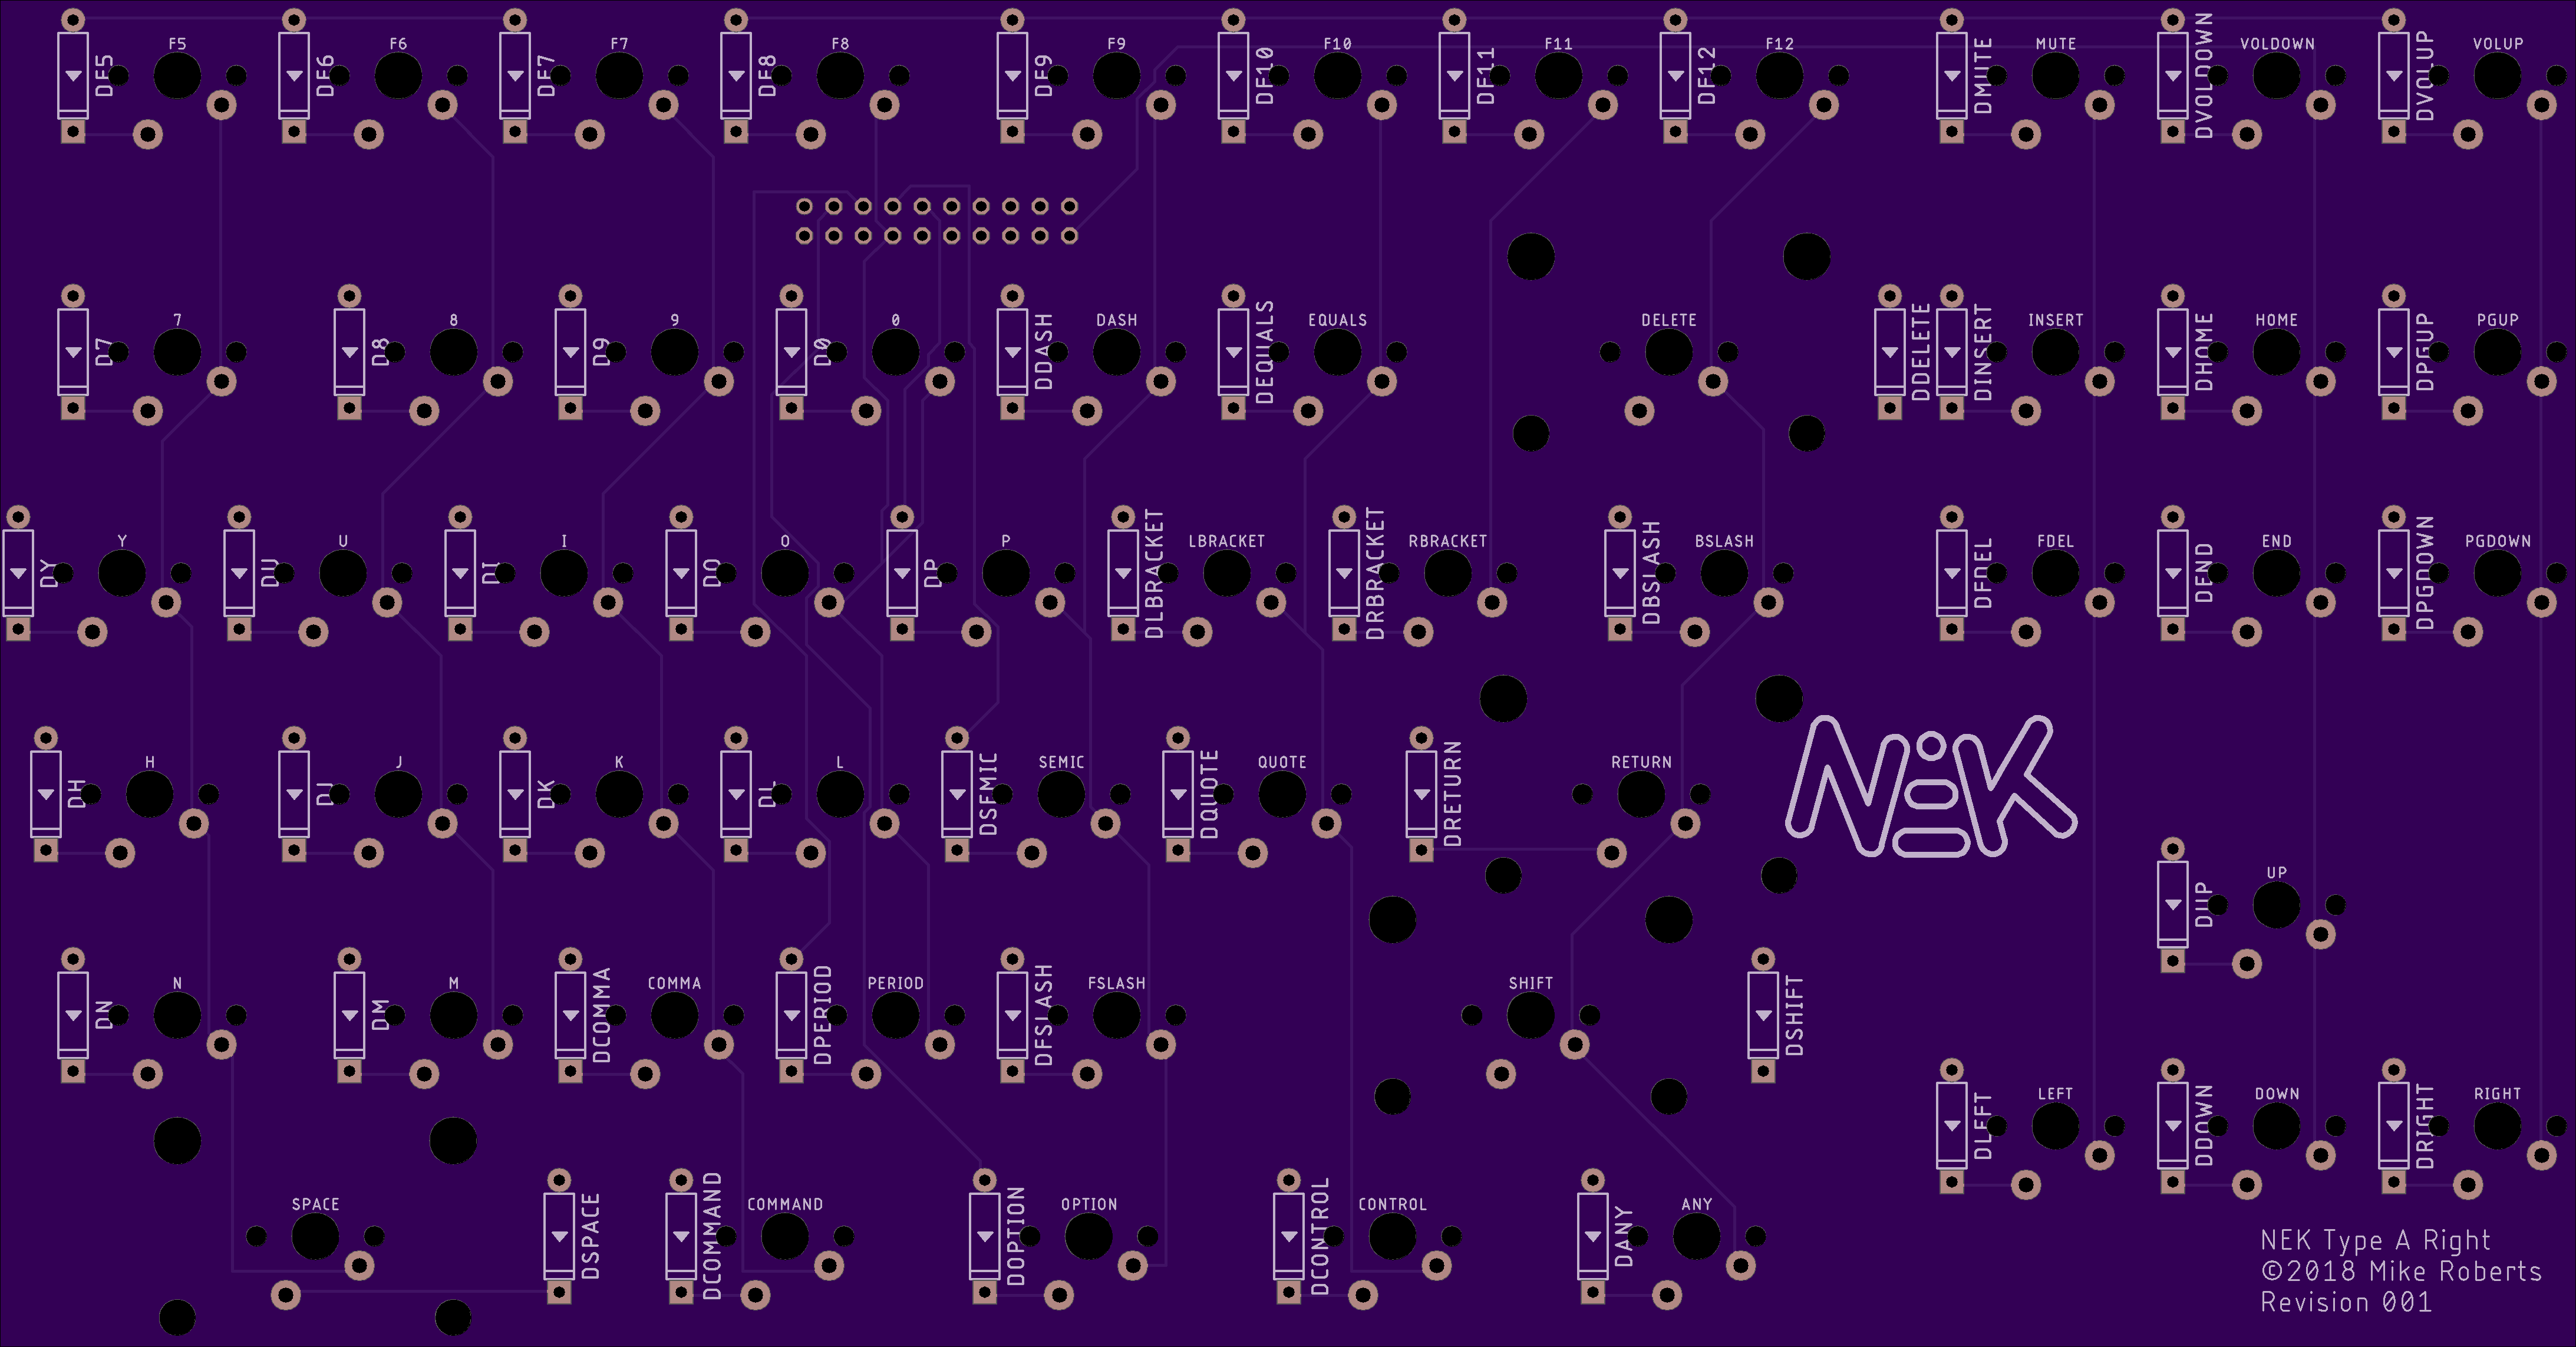 Right PCB Rev 001 Top